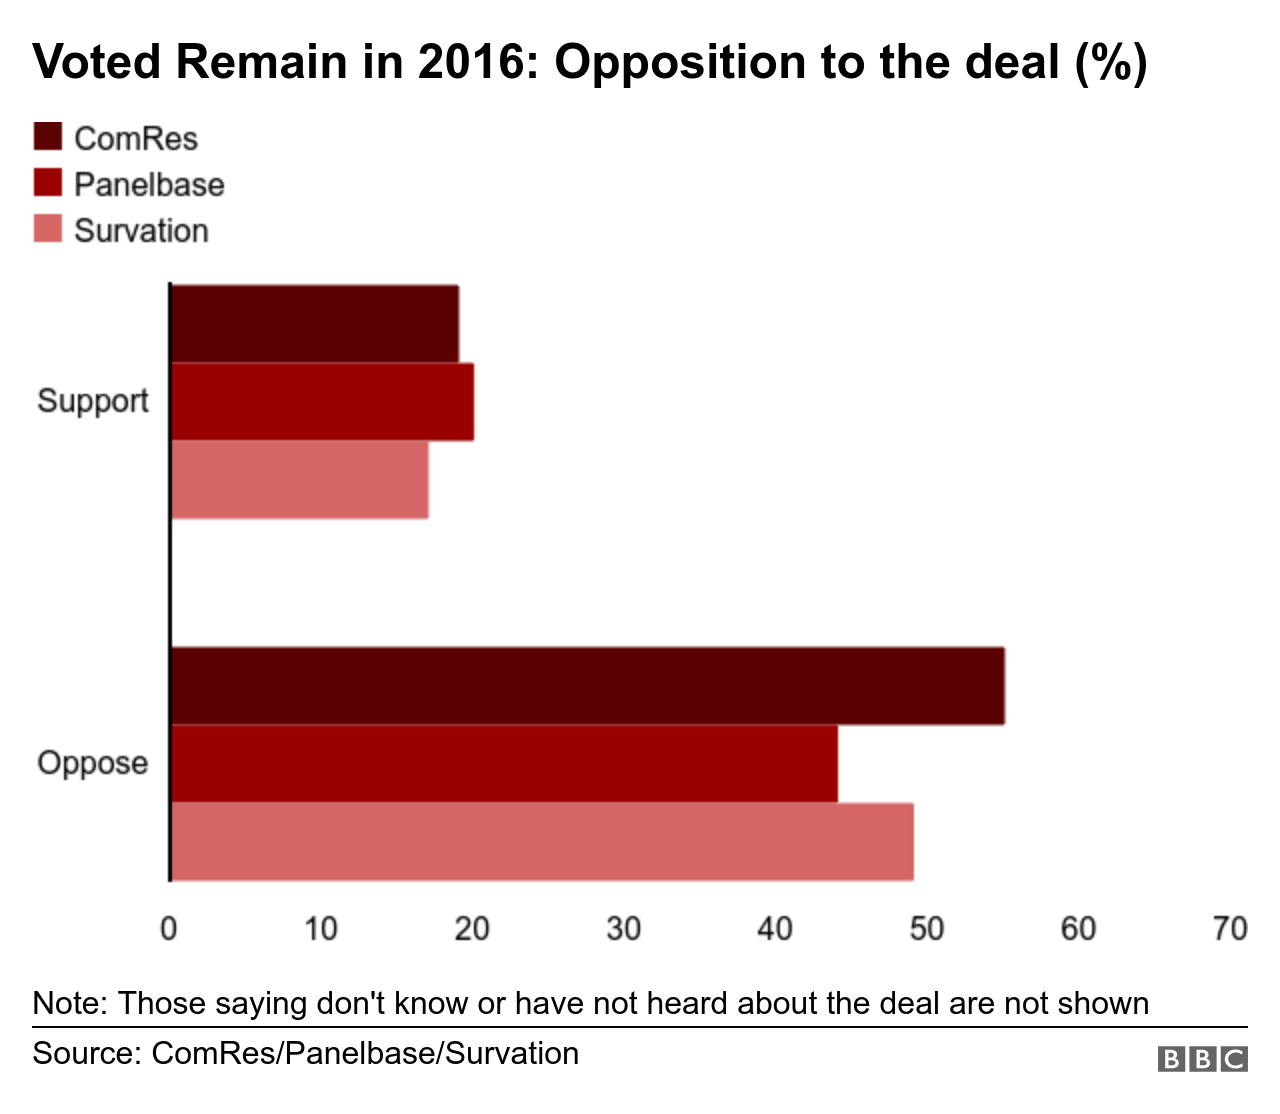 Bar chart showing opposition to the deal from Remain voters